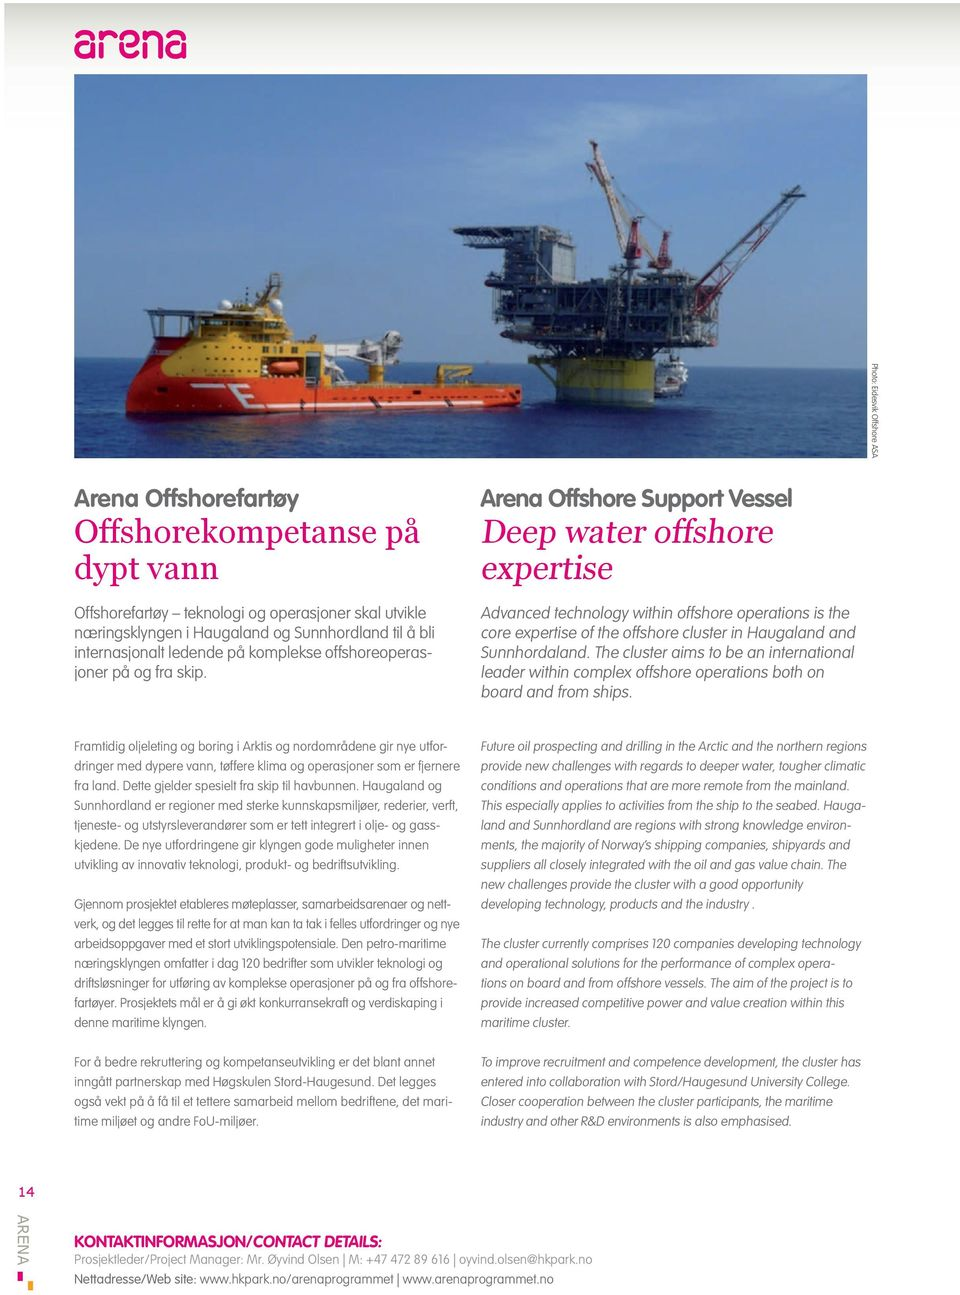 Arena Offshore Support Vessel Deep water offshore expertise Advanced technology within offshore operations is the core expertise of the offshore cluster in Haugaland and Sunnhordaland.